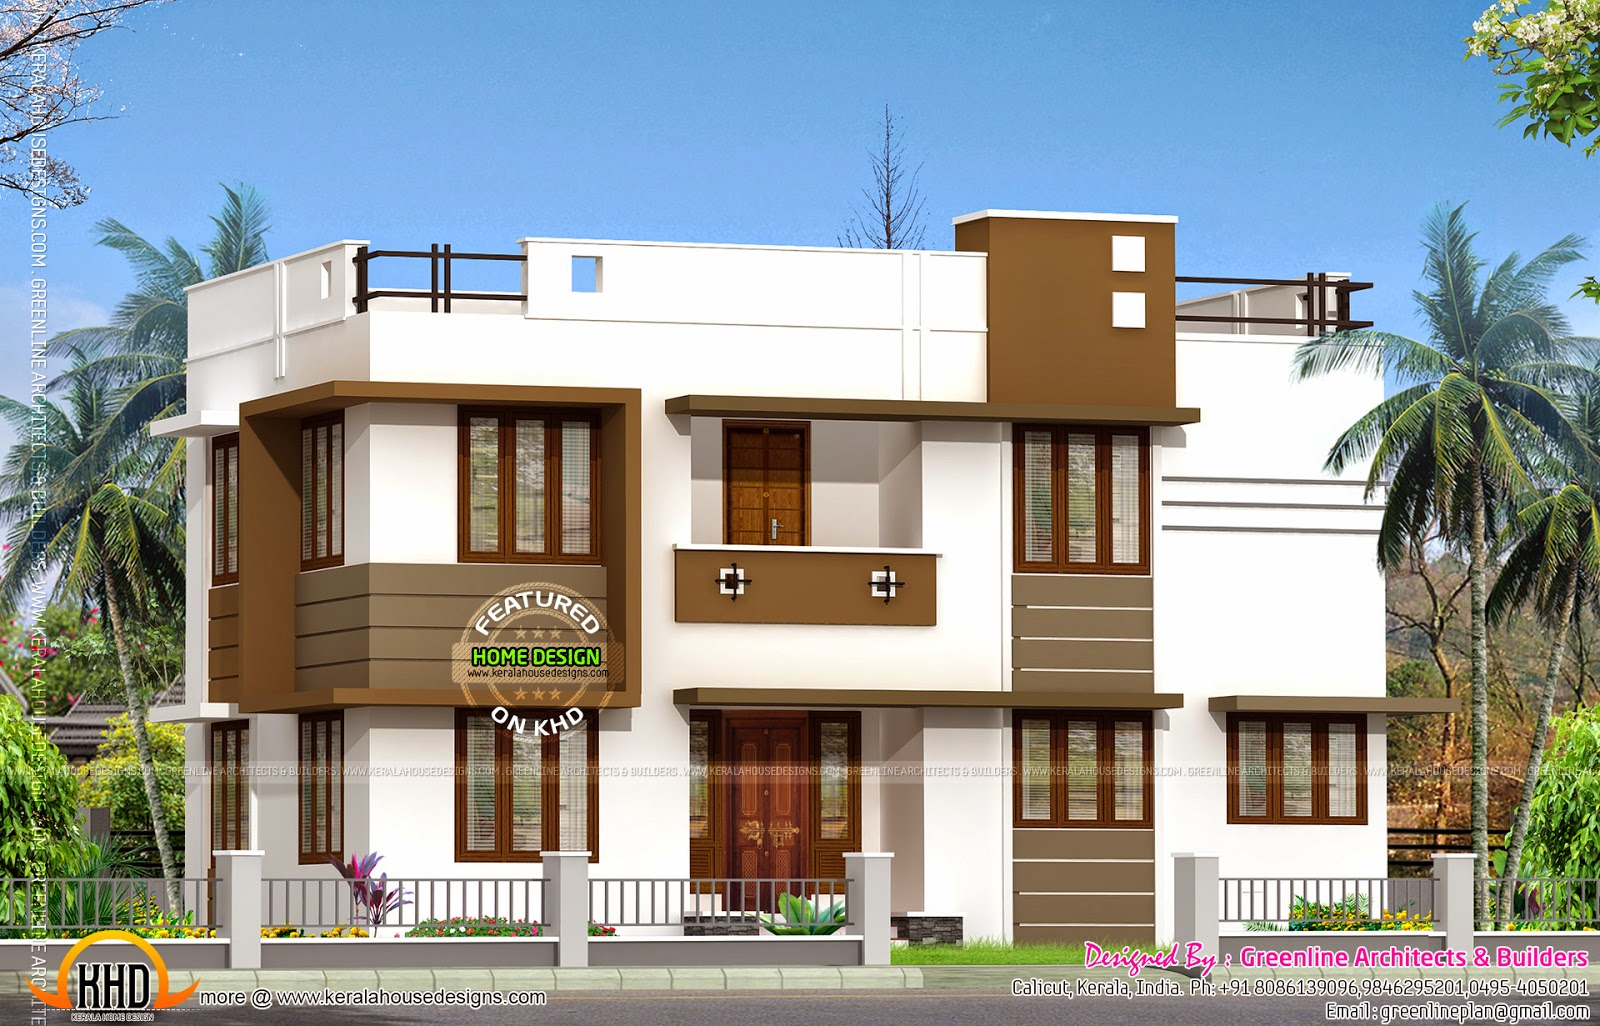 Low Budget Double Storied House Kerala Home Design And